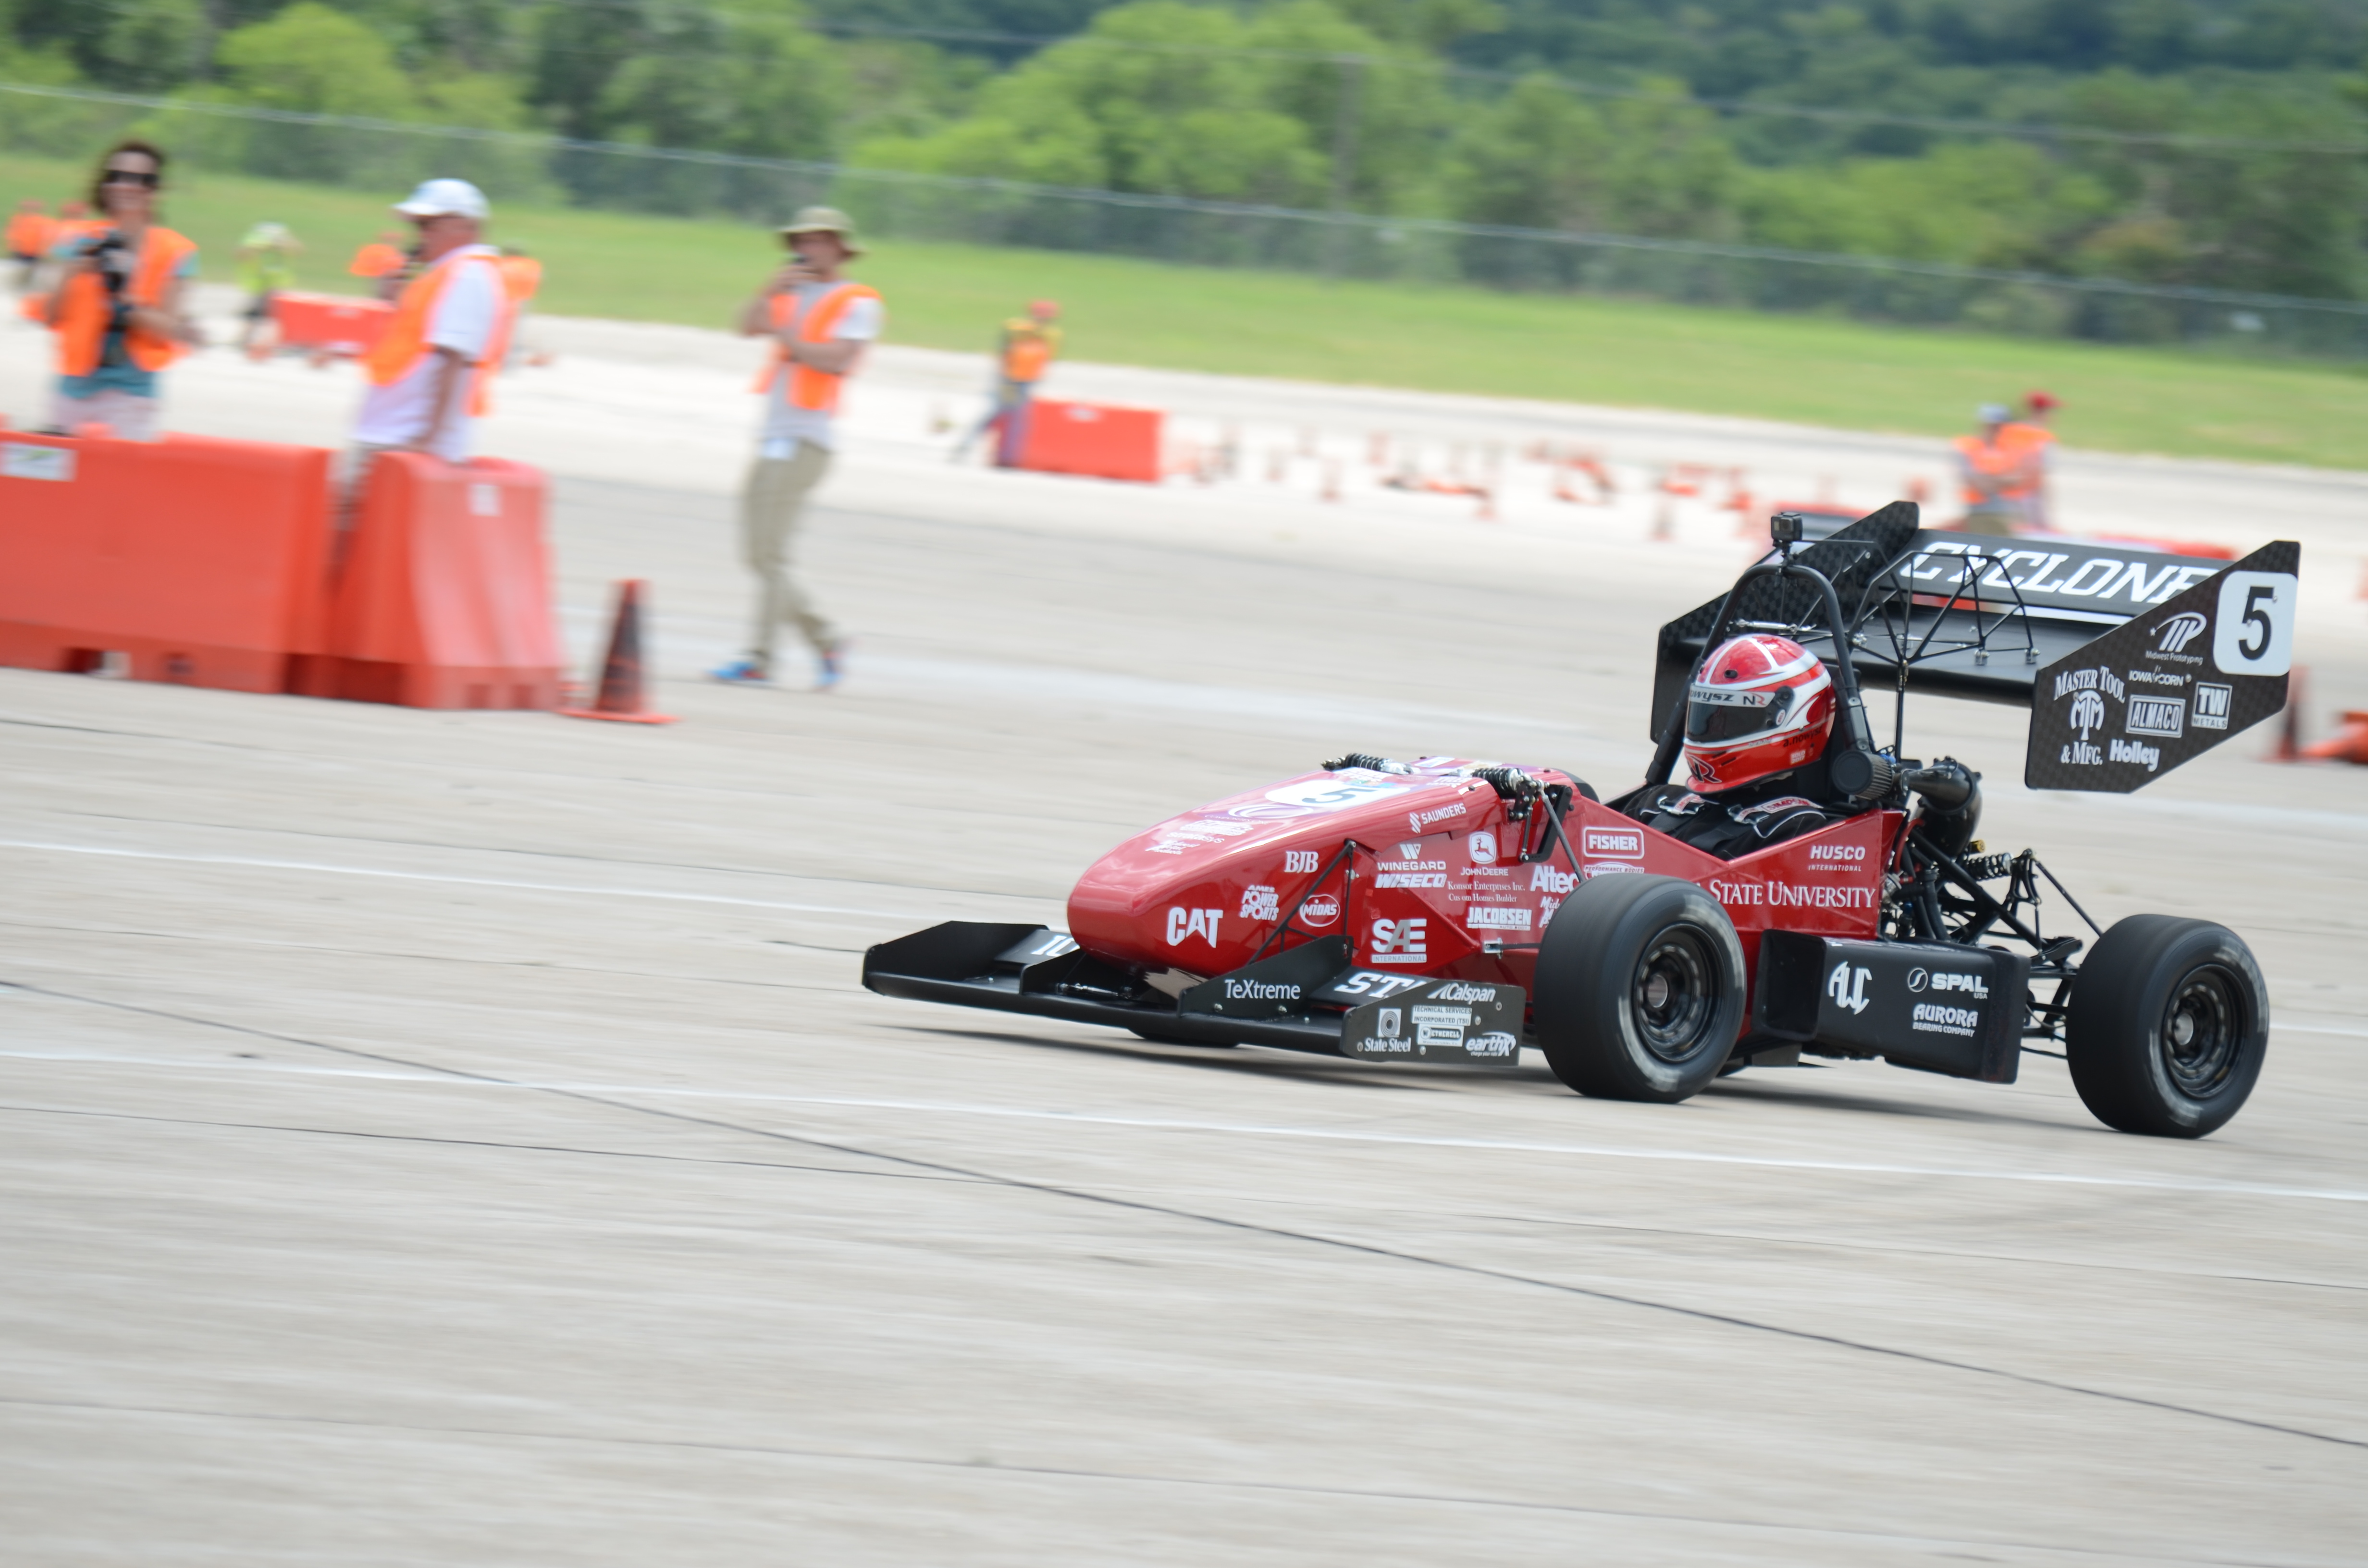 Cyclone Racing Takes 4th Place Overall At Fsae Lincoln College Of